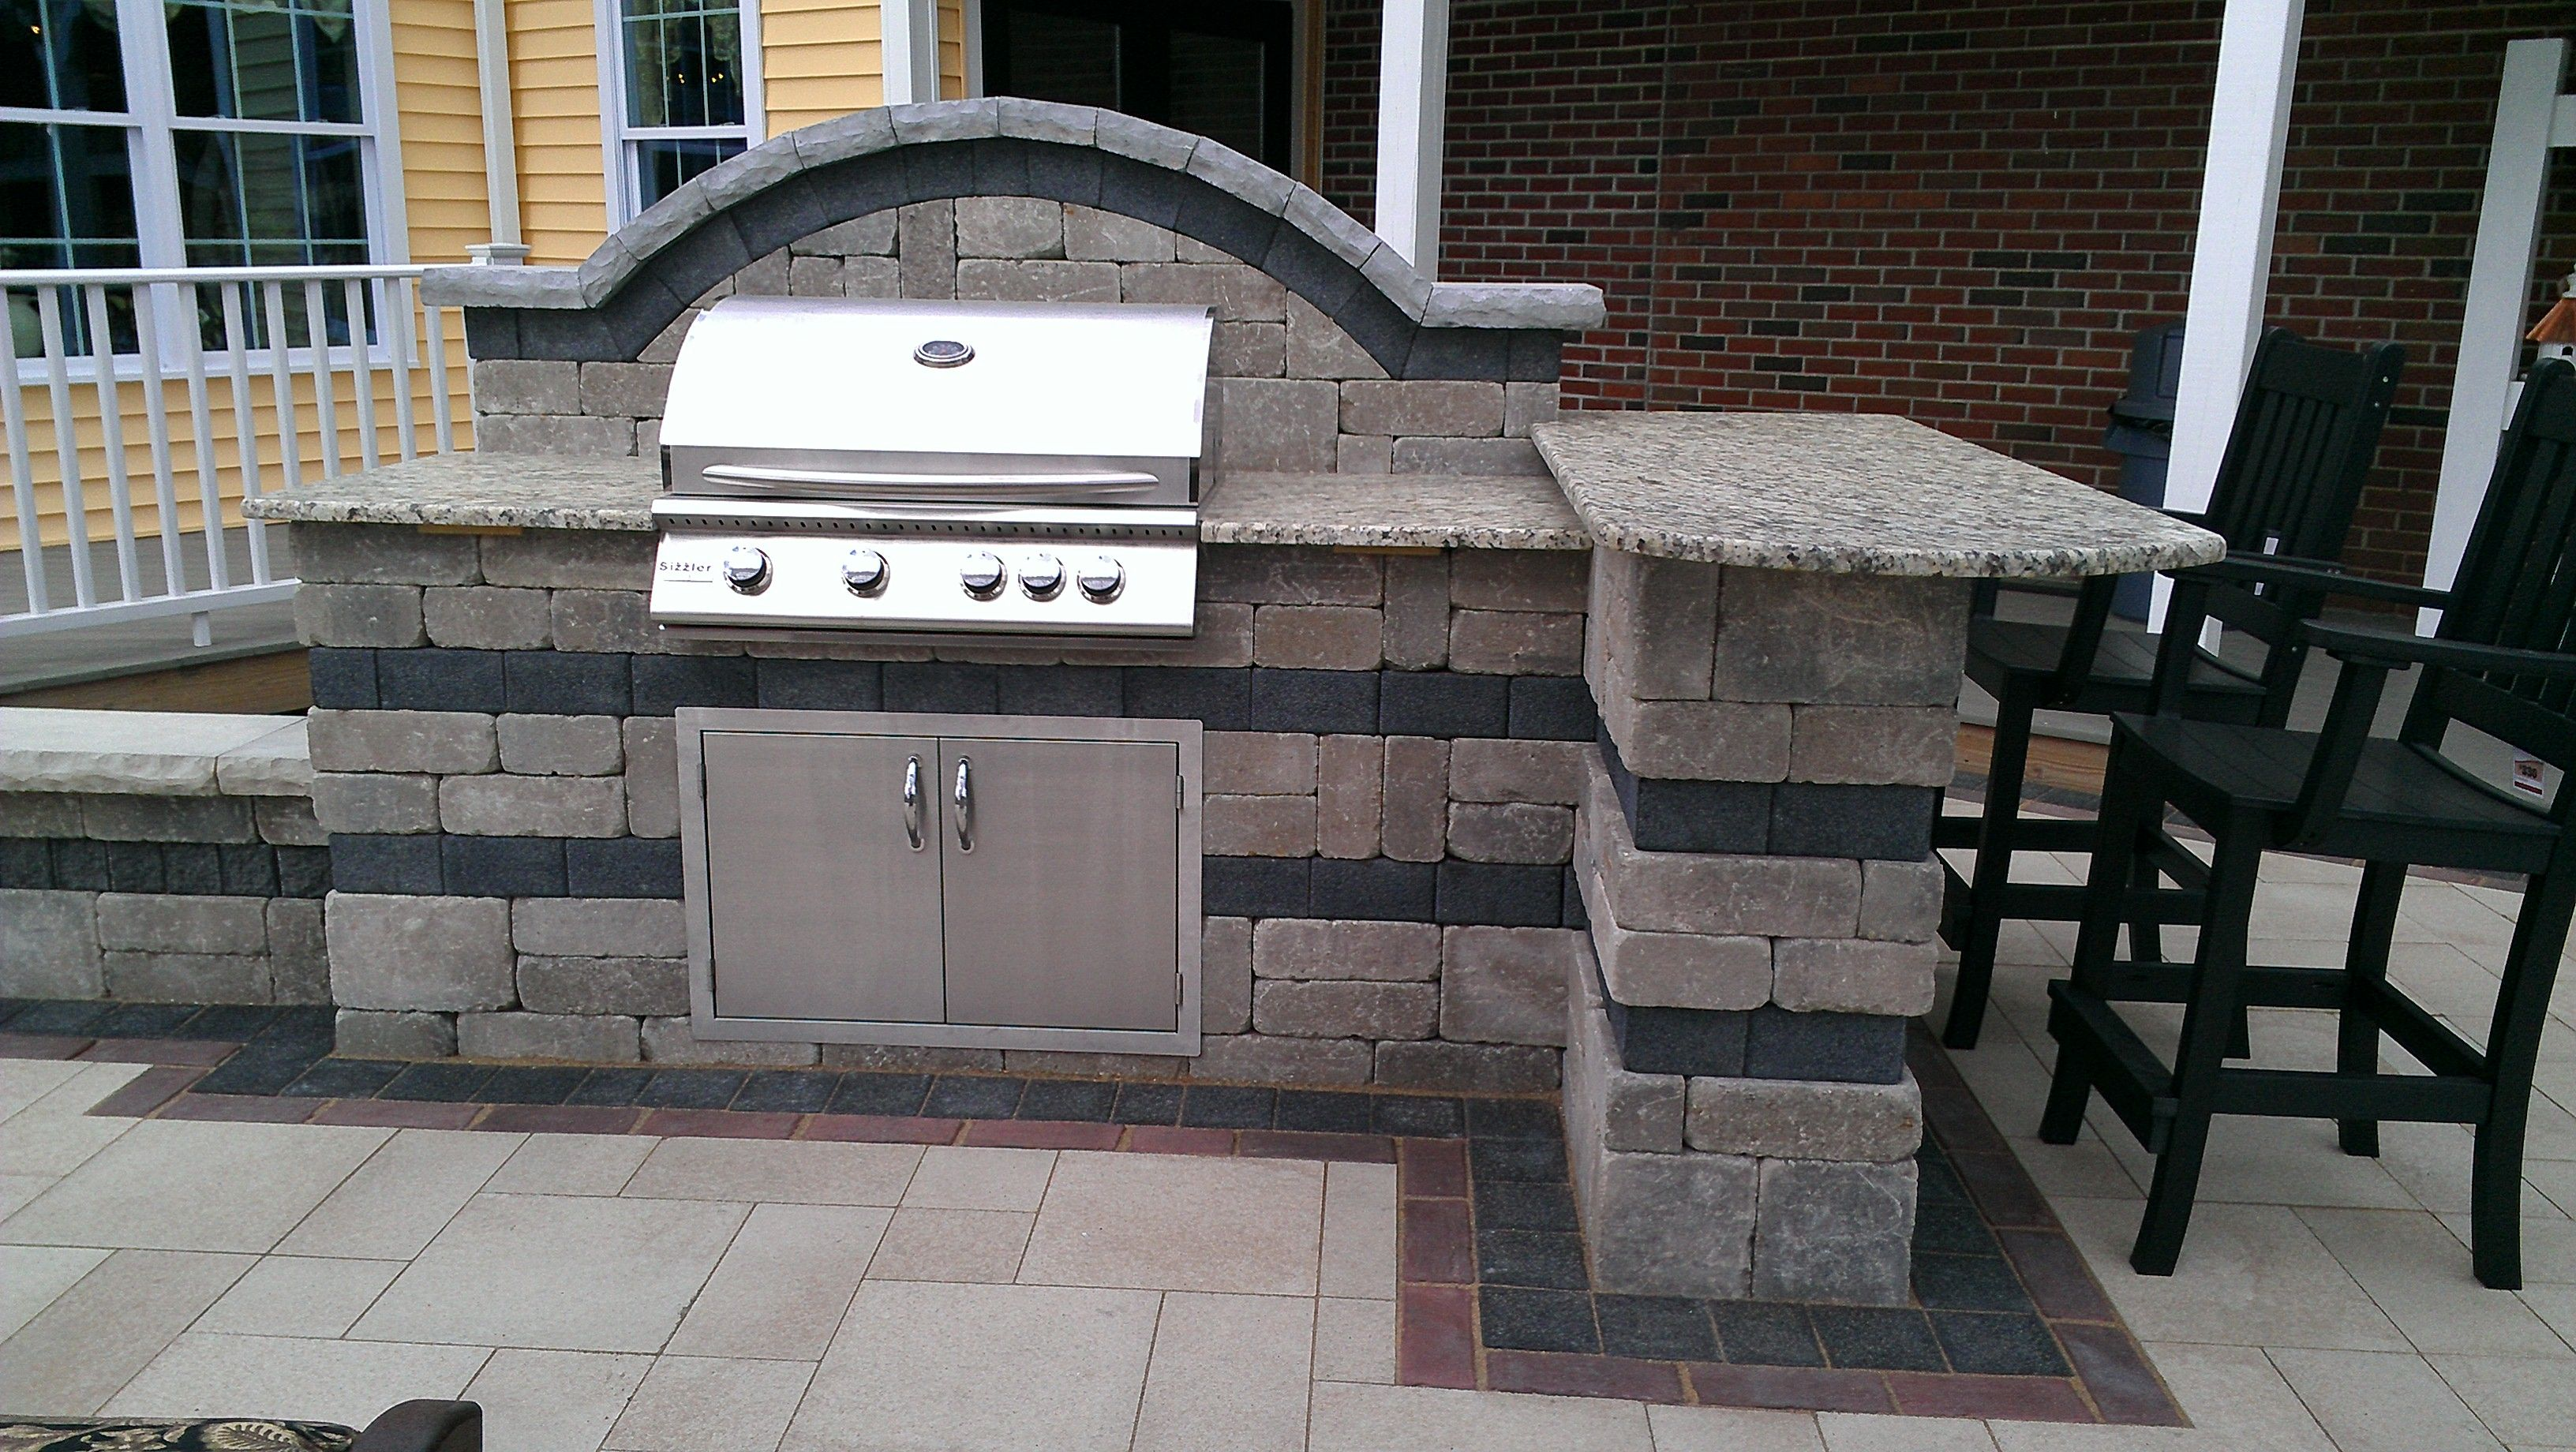 Outdoor Kitchen and Bar with Stainless steel grill and doors on a